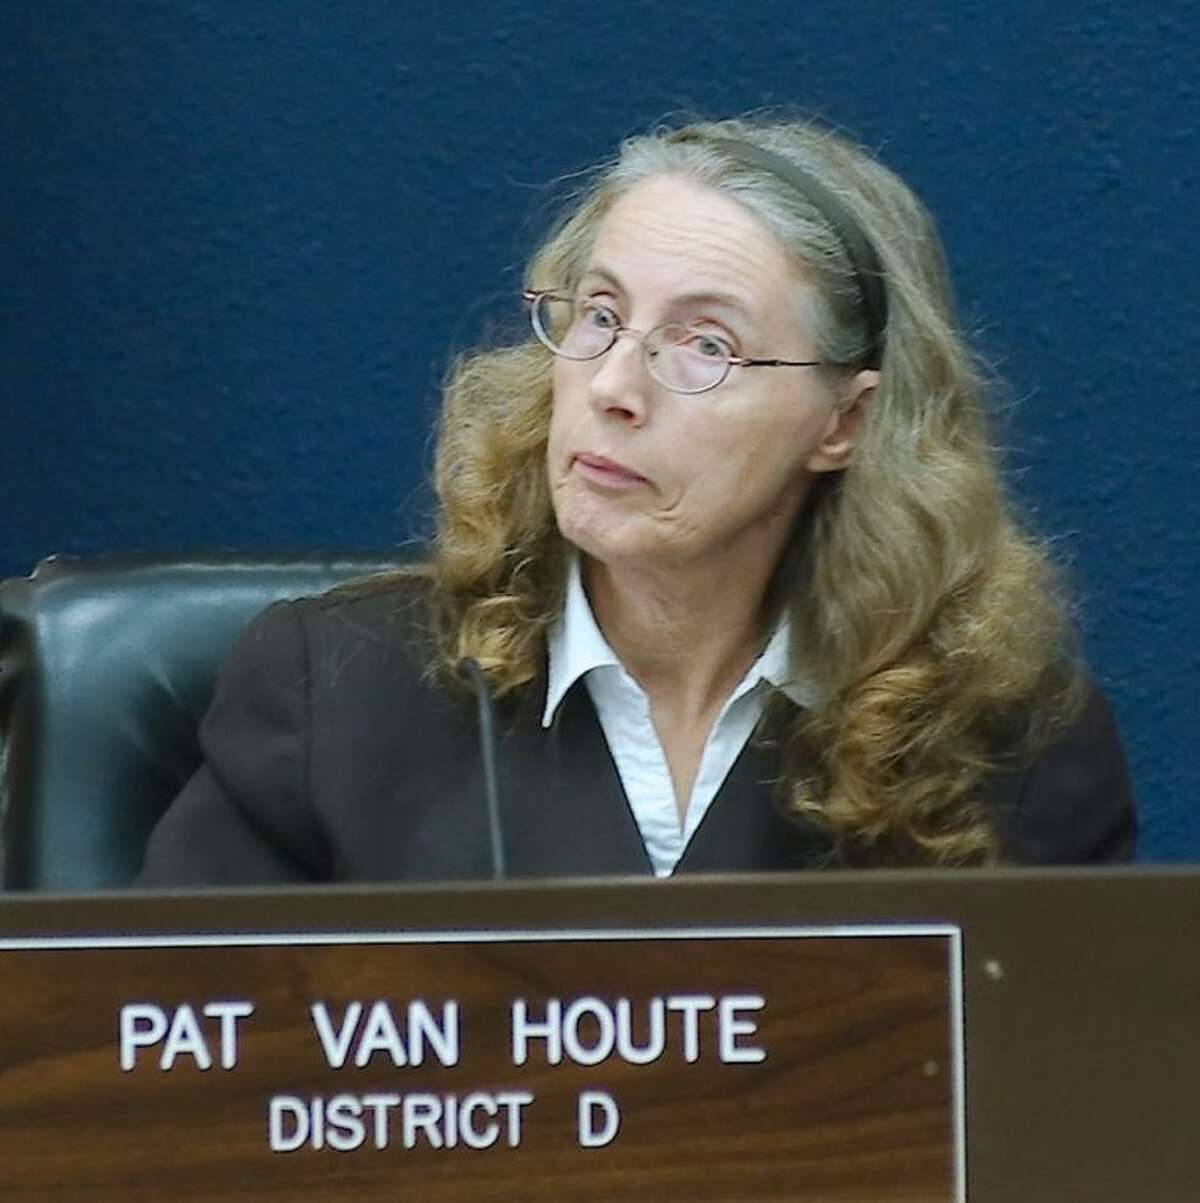 One of four councilmembers to speak and vote against the charter revision proposals, Pat Van Houte said,